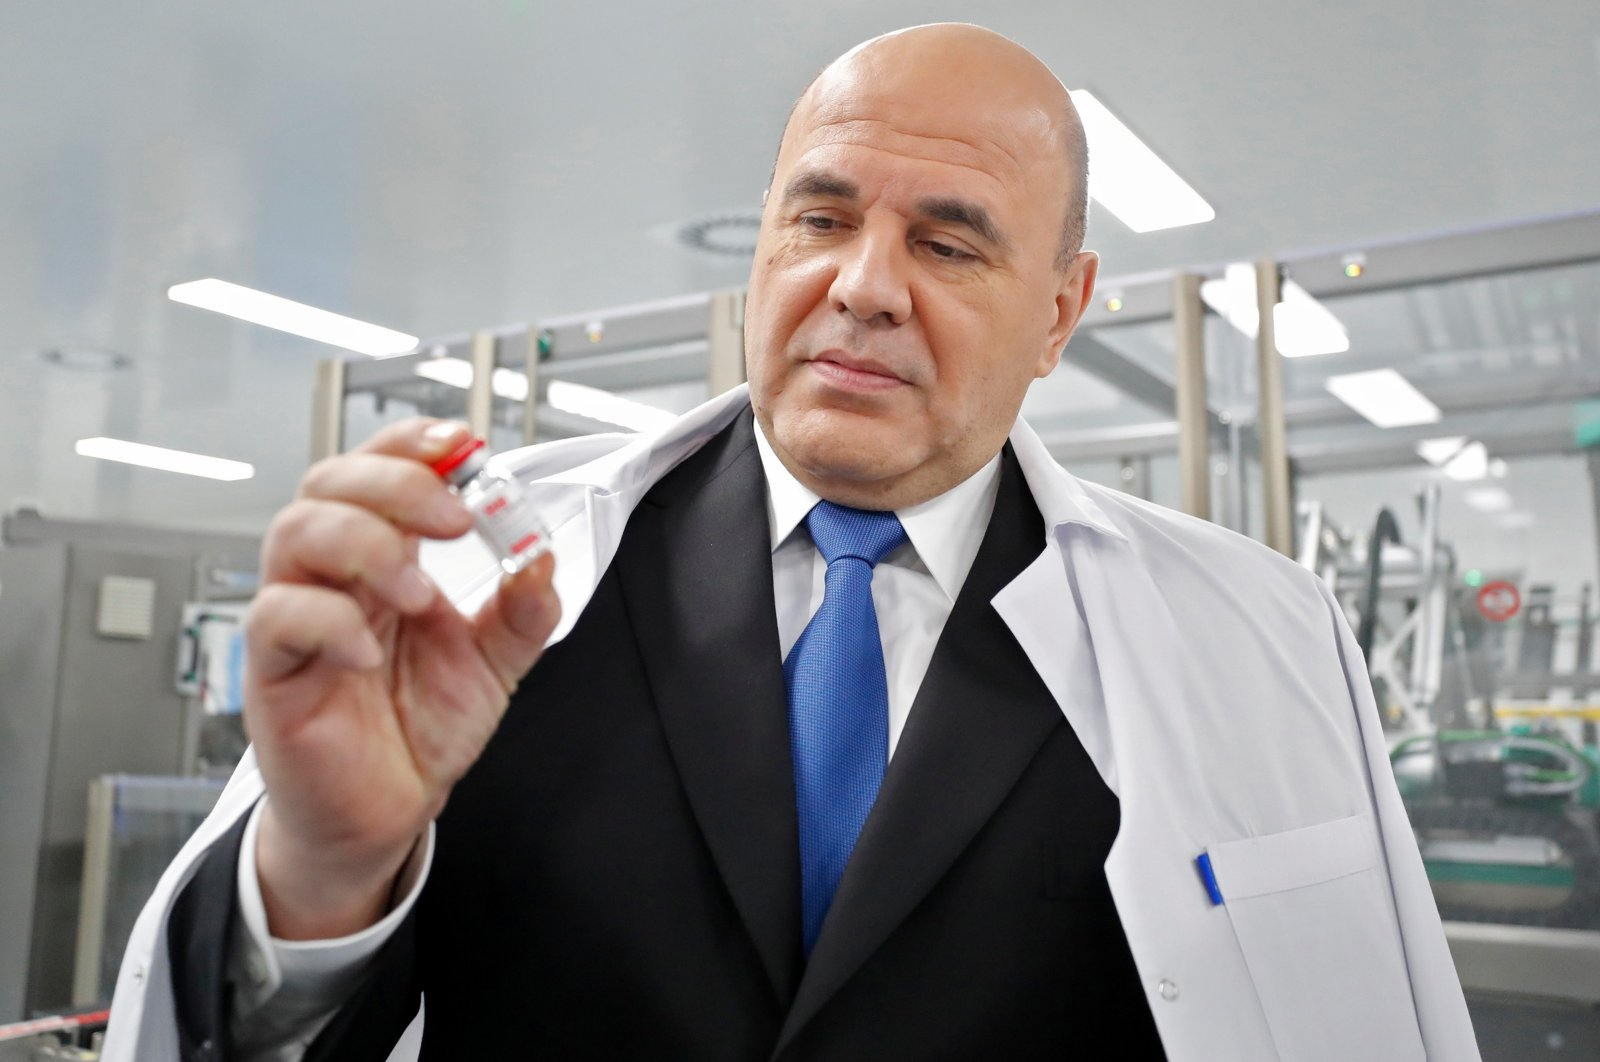 Russia's Prime Minister Mikhail Mishustin visits a facility of BIOCAD biotechnology company which produces the Gam-COVID-Vac, also known as Sputnik-V, vaccine against the COVID-19, in Saint Petersburg, Russia, Dec. 25, 2020. (Reuters Photo)